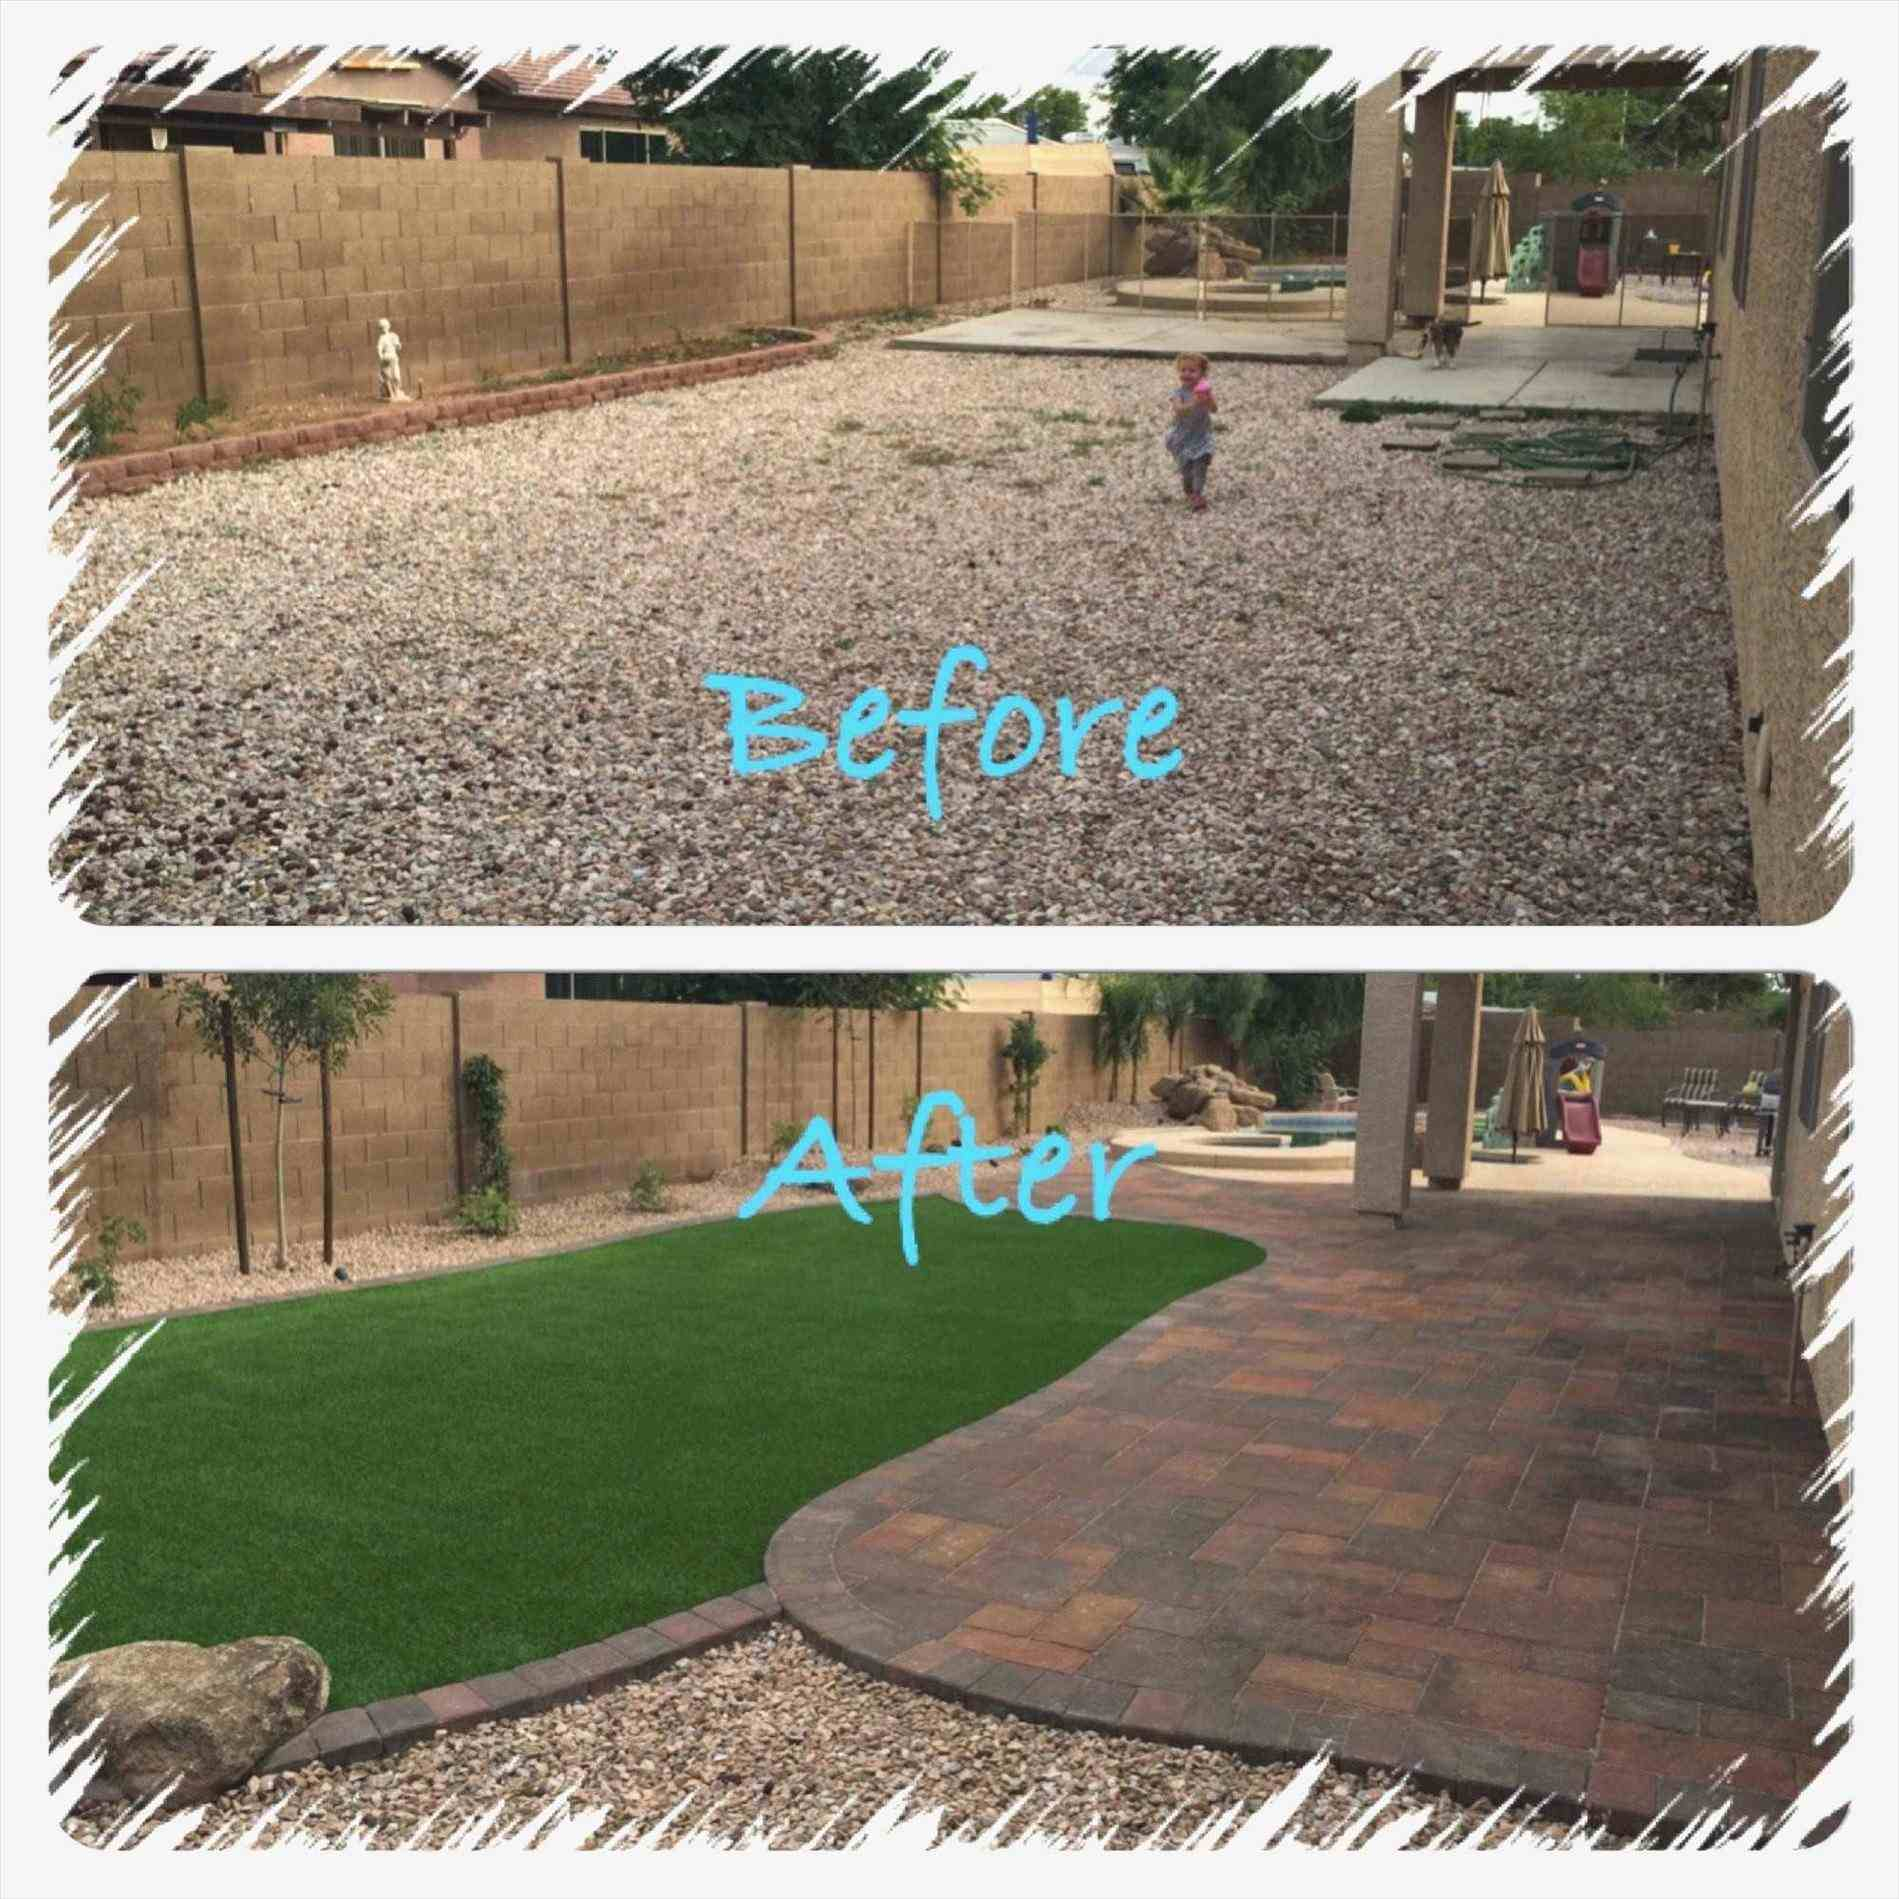 Arizona Backyard Ideas New Picture Of Small Rhlaxmiddecorcom Good inside Arizona Backyard Ideas